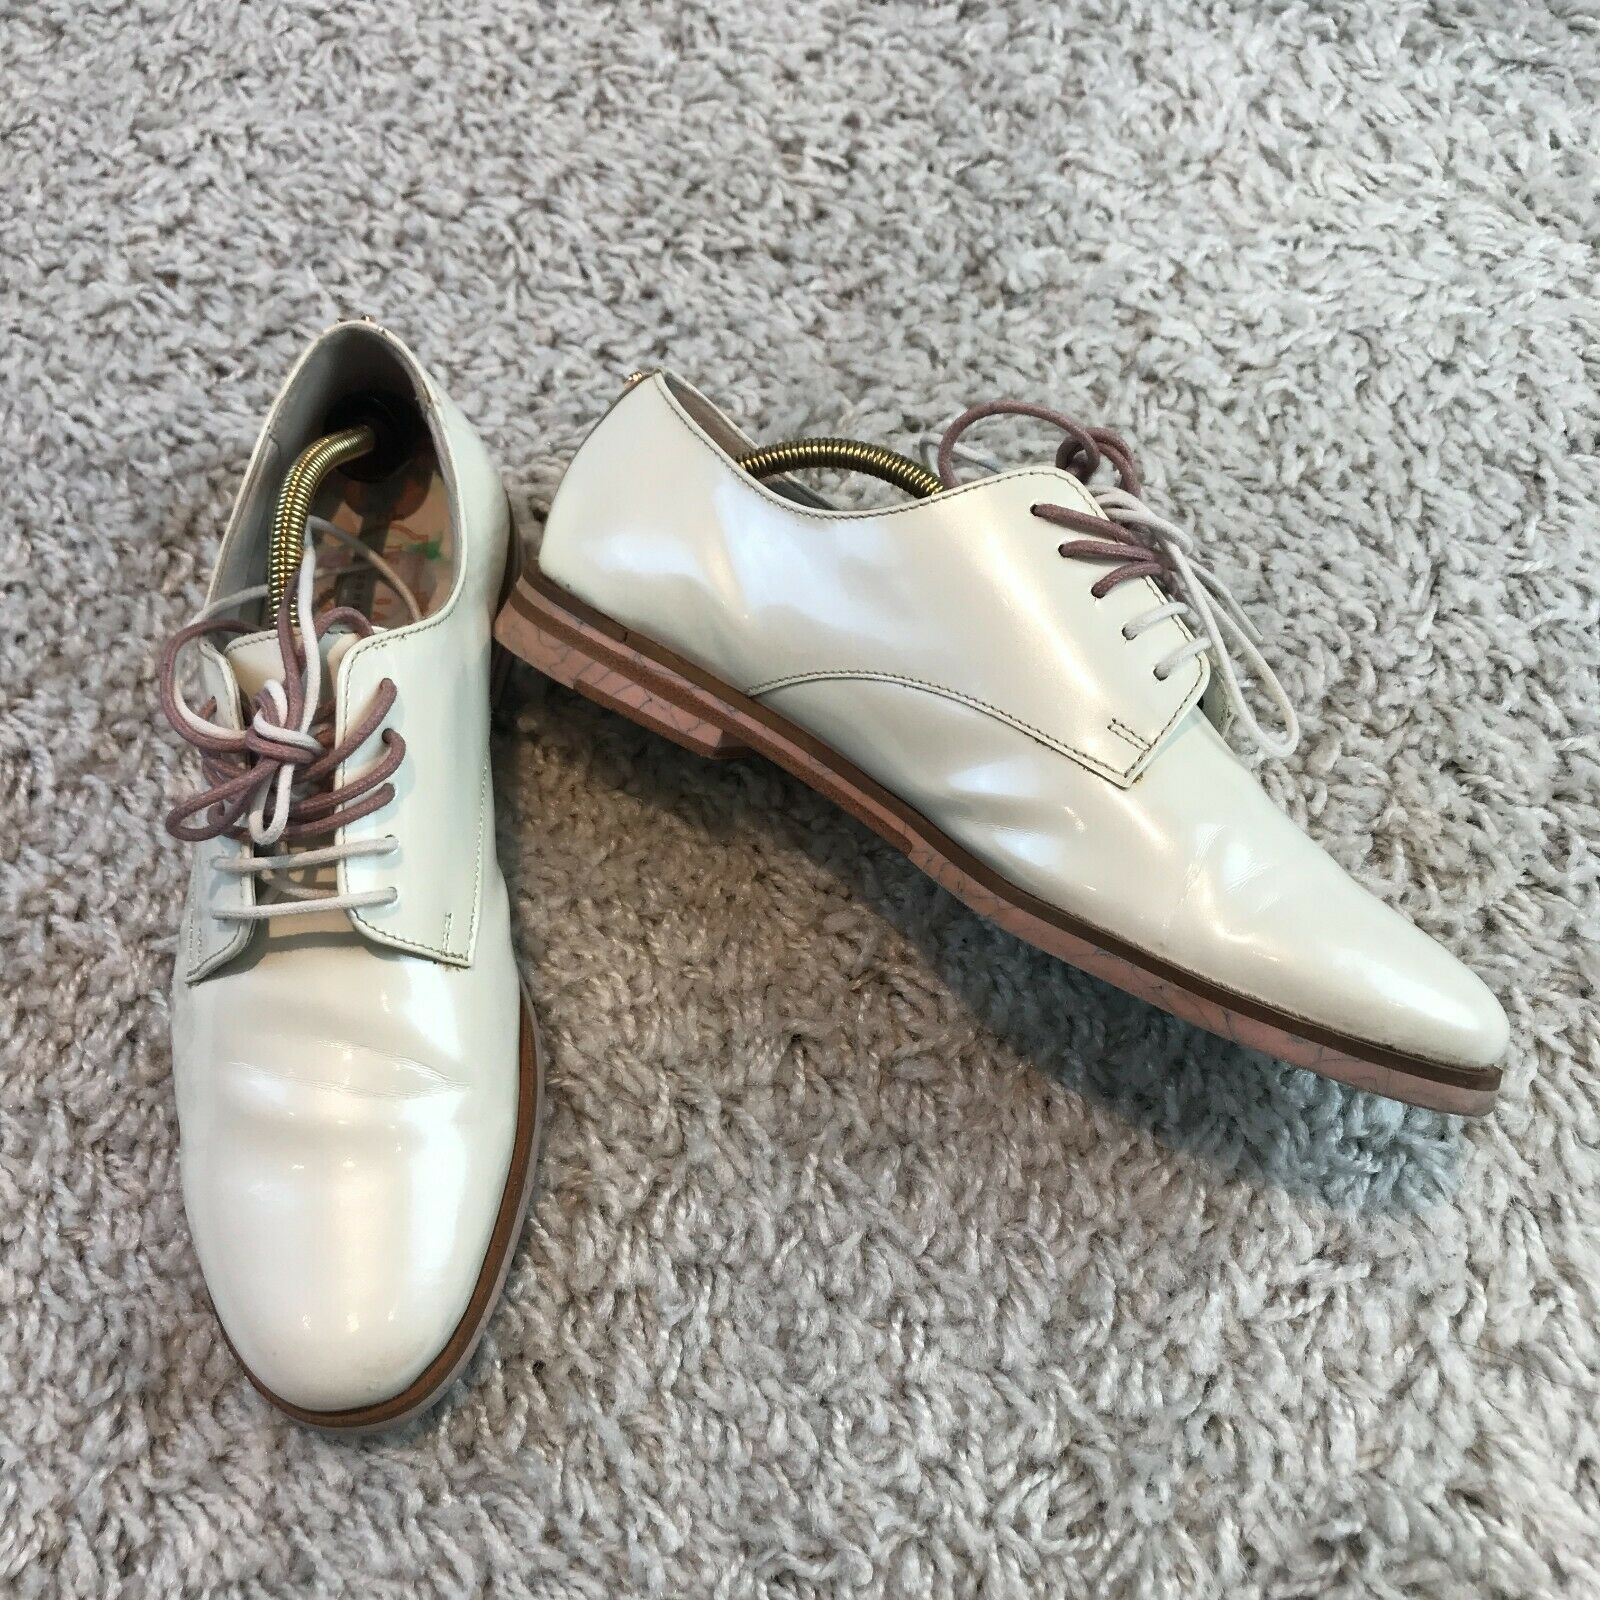 Ted Baker Loomi Womens Shoes UK 5 Eur 38 White Patent Leather Oxford